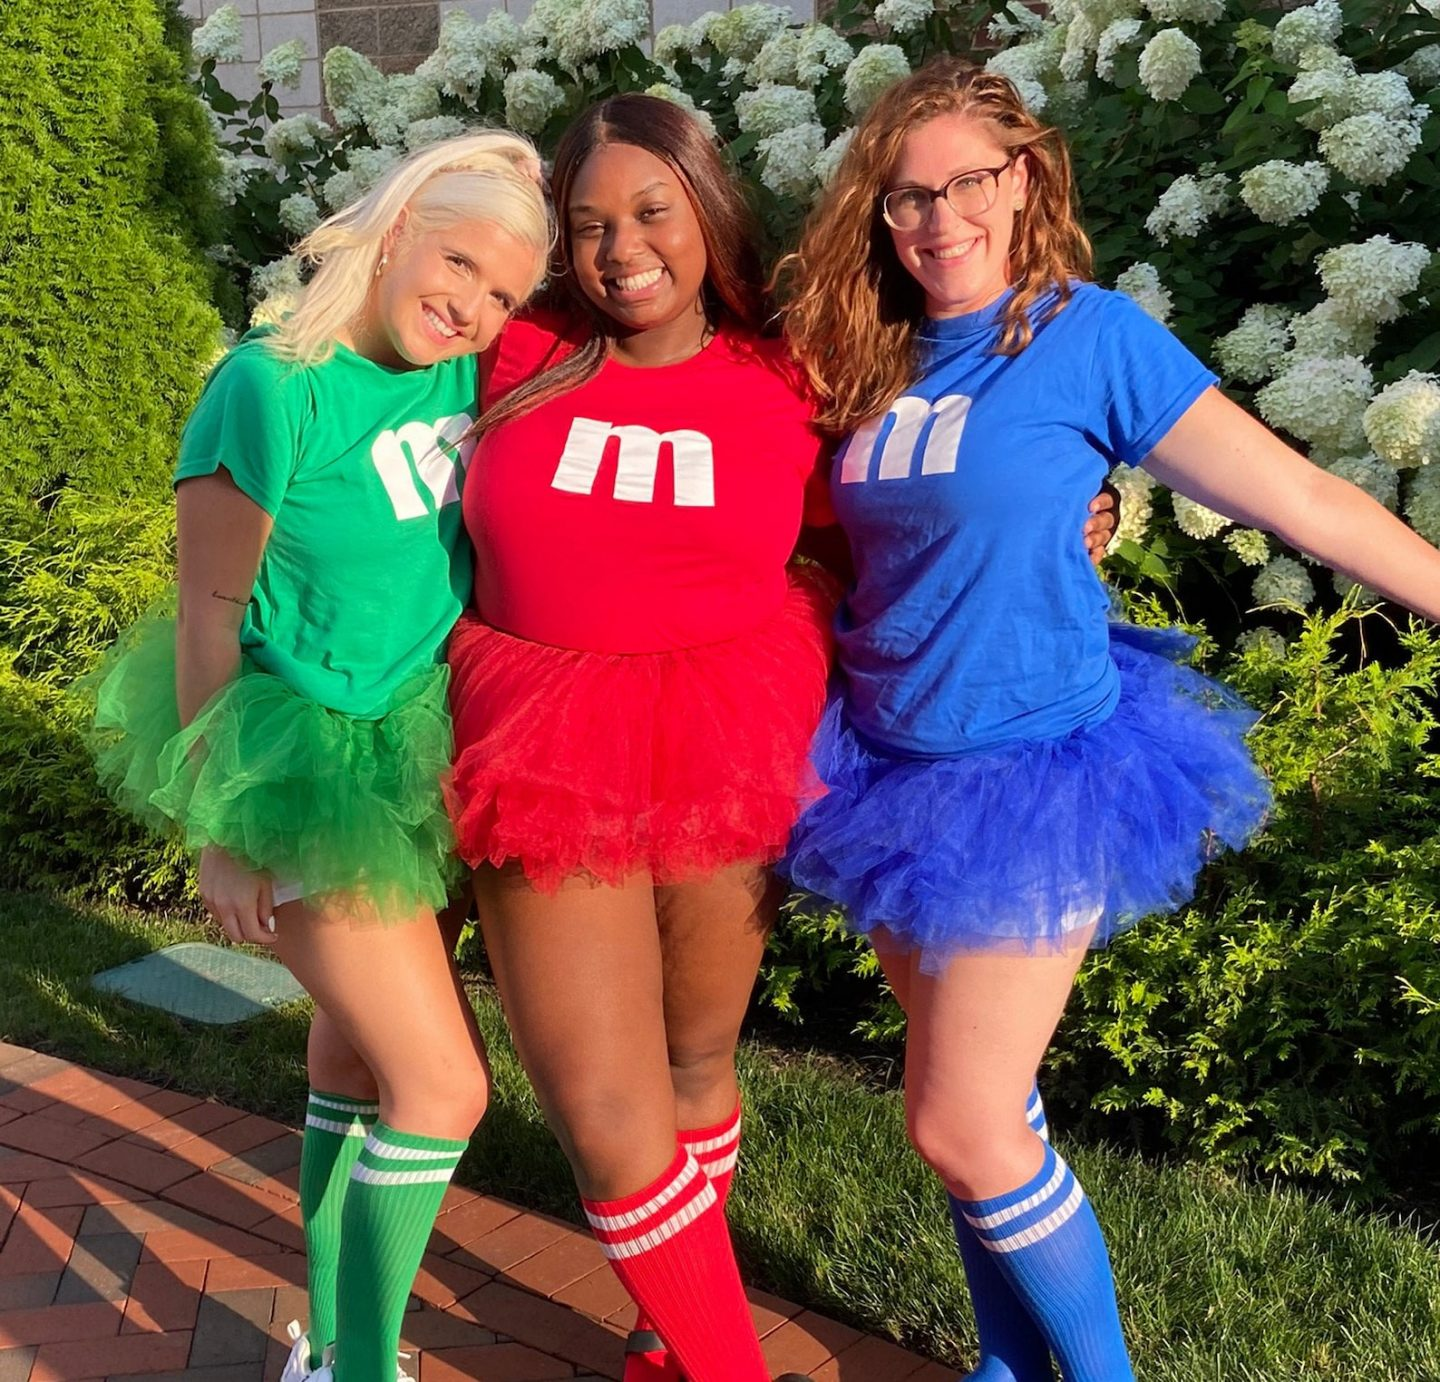 M&Ms Halloween costumes for best friends